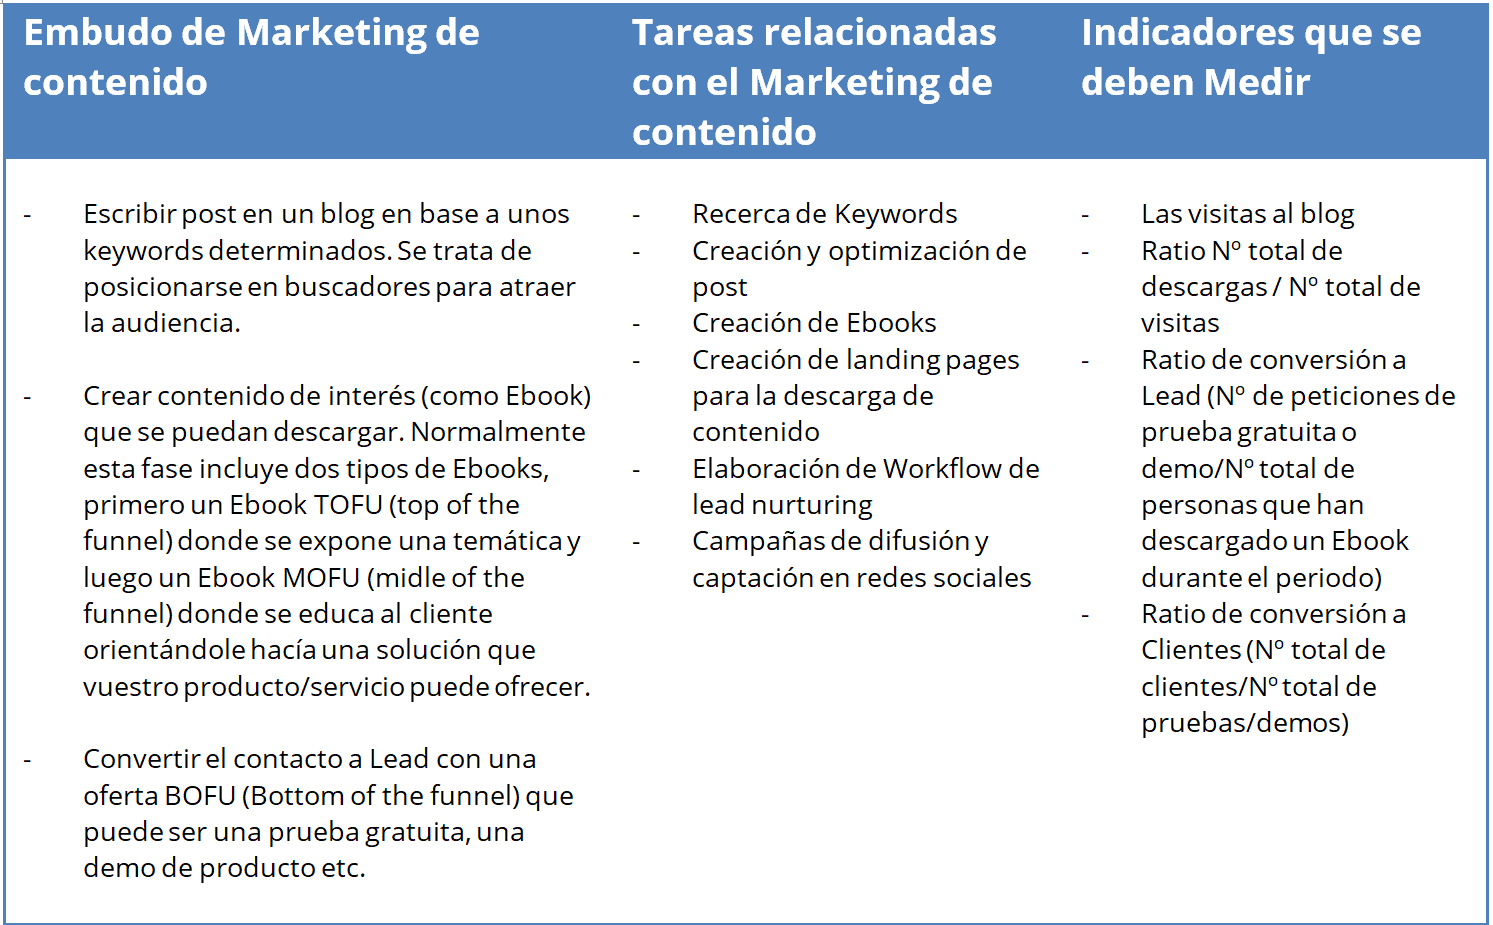 Embudo marketing de contenido